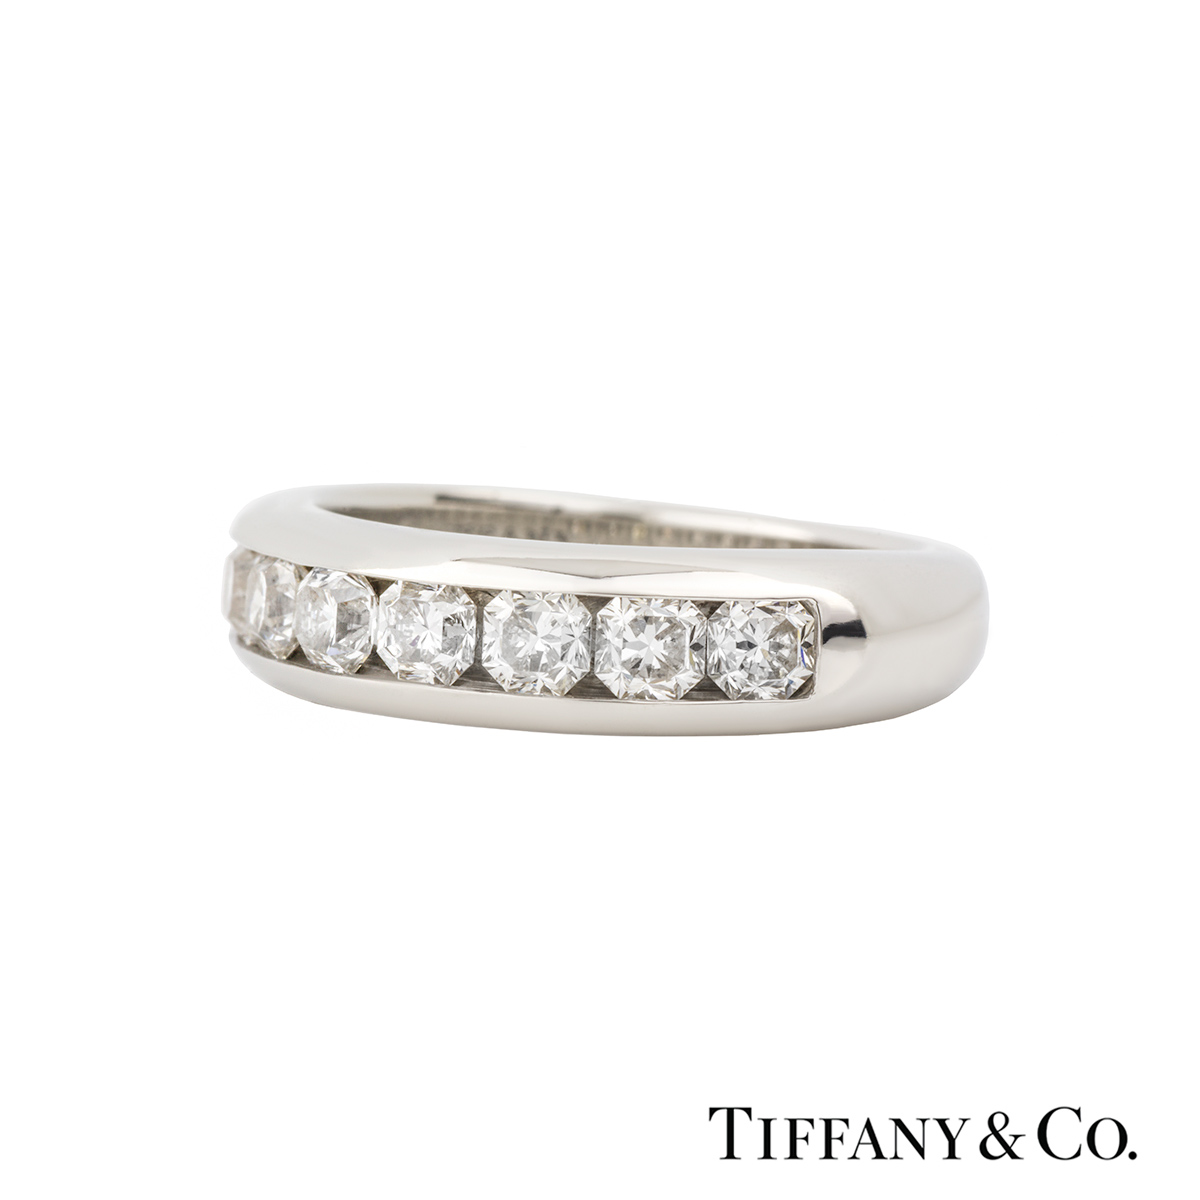 Tiffany Amp Co Lucida Cut Diamond Half Eternity Ring In